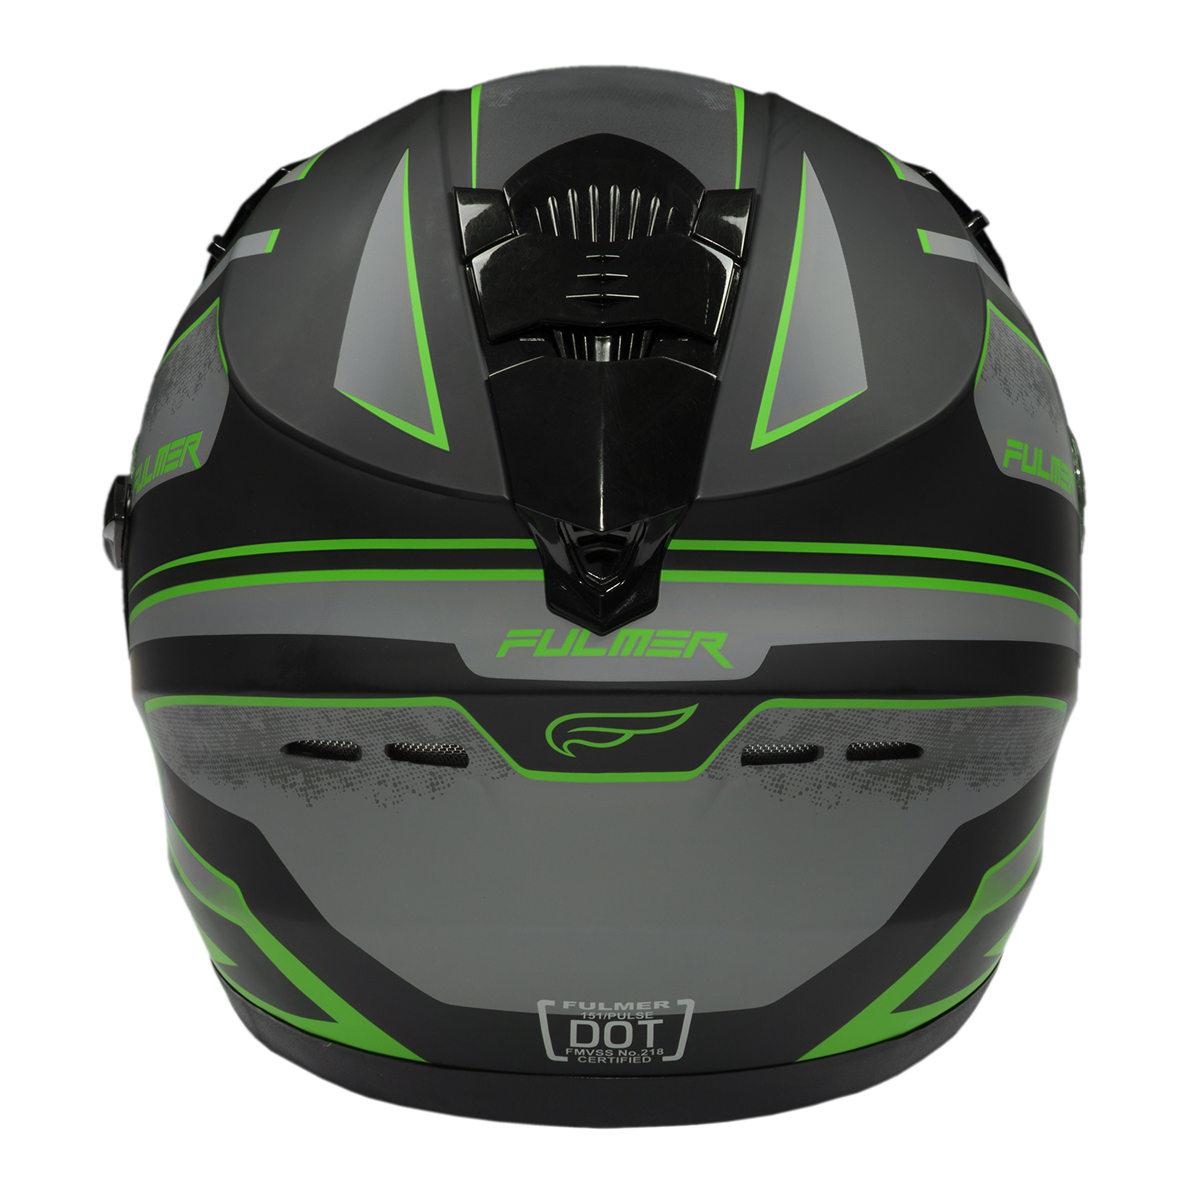 Fulmer-Adult-Full-Face-Motorcycle-Helmet-151-Pulse-DOT-Approved-Street-Bike thumbnail 14